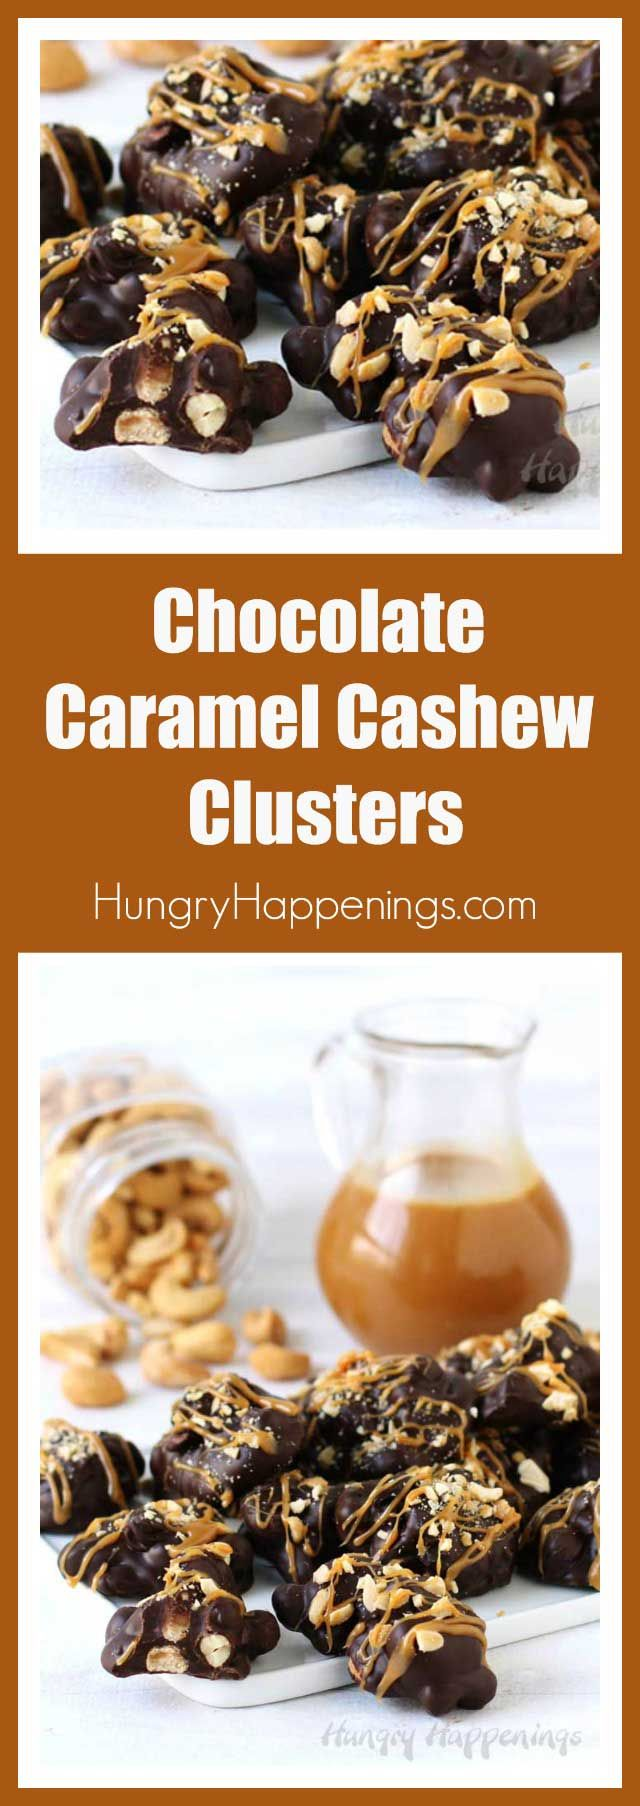 Making Chocolate Caramel Cashew Clusters at home is super easy and these handmade candies make perfect gifts or treats for any occasion.